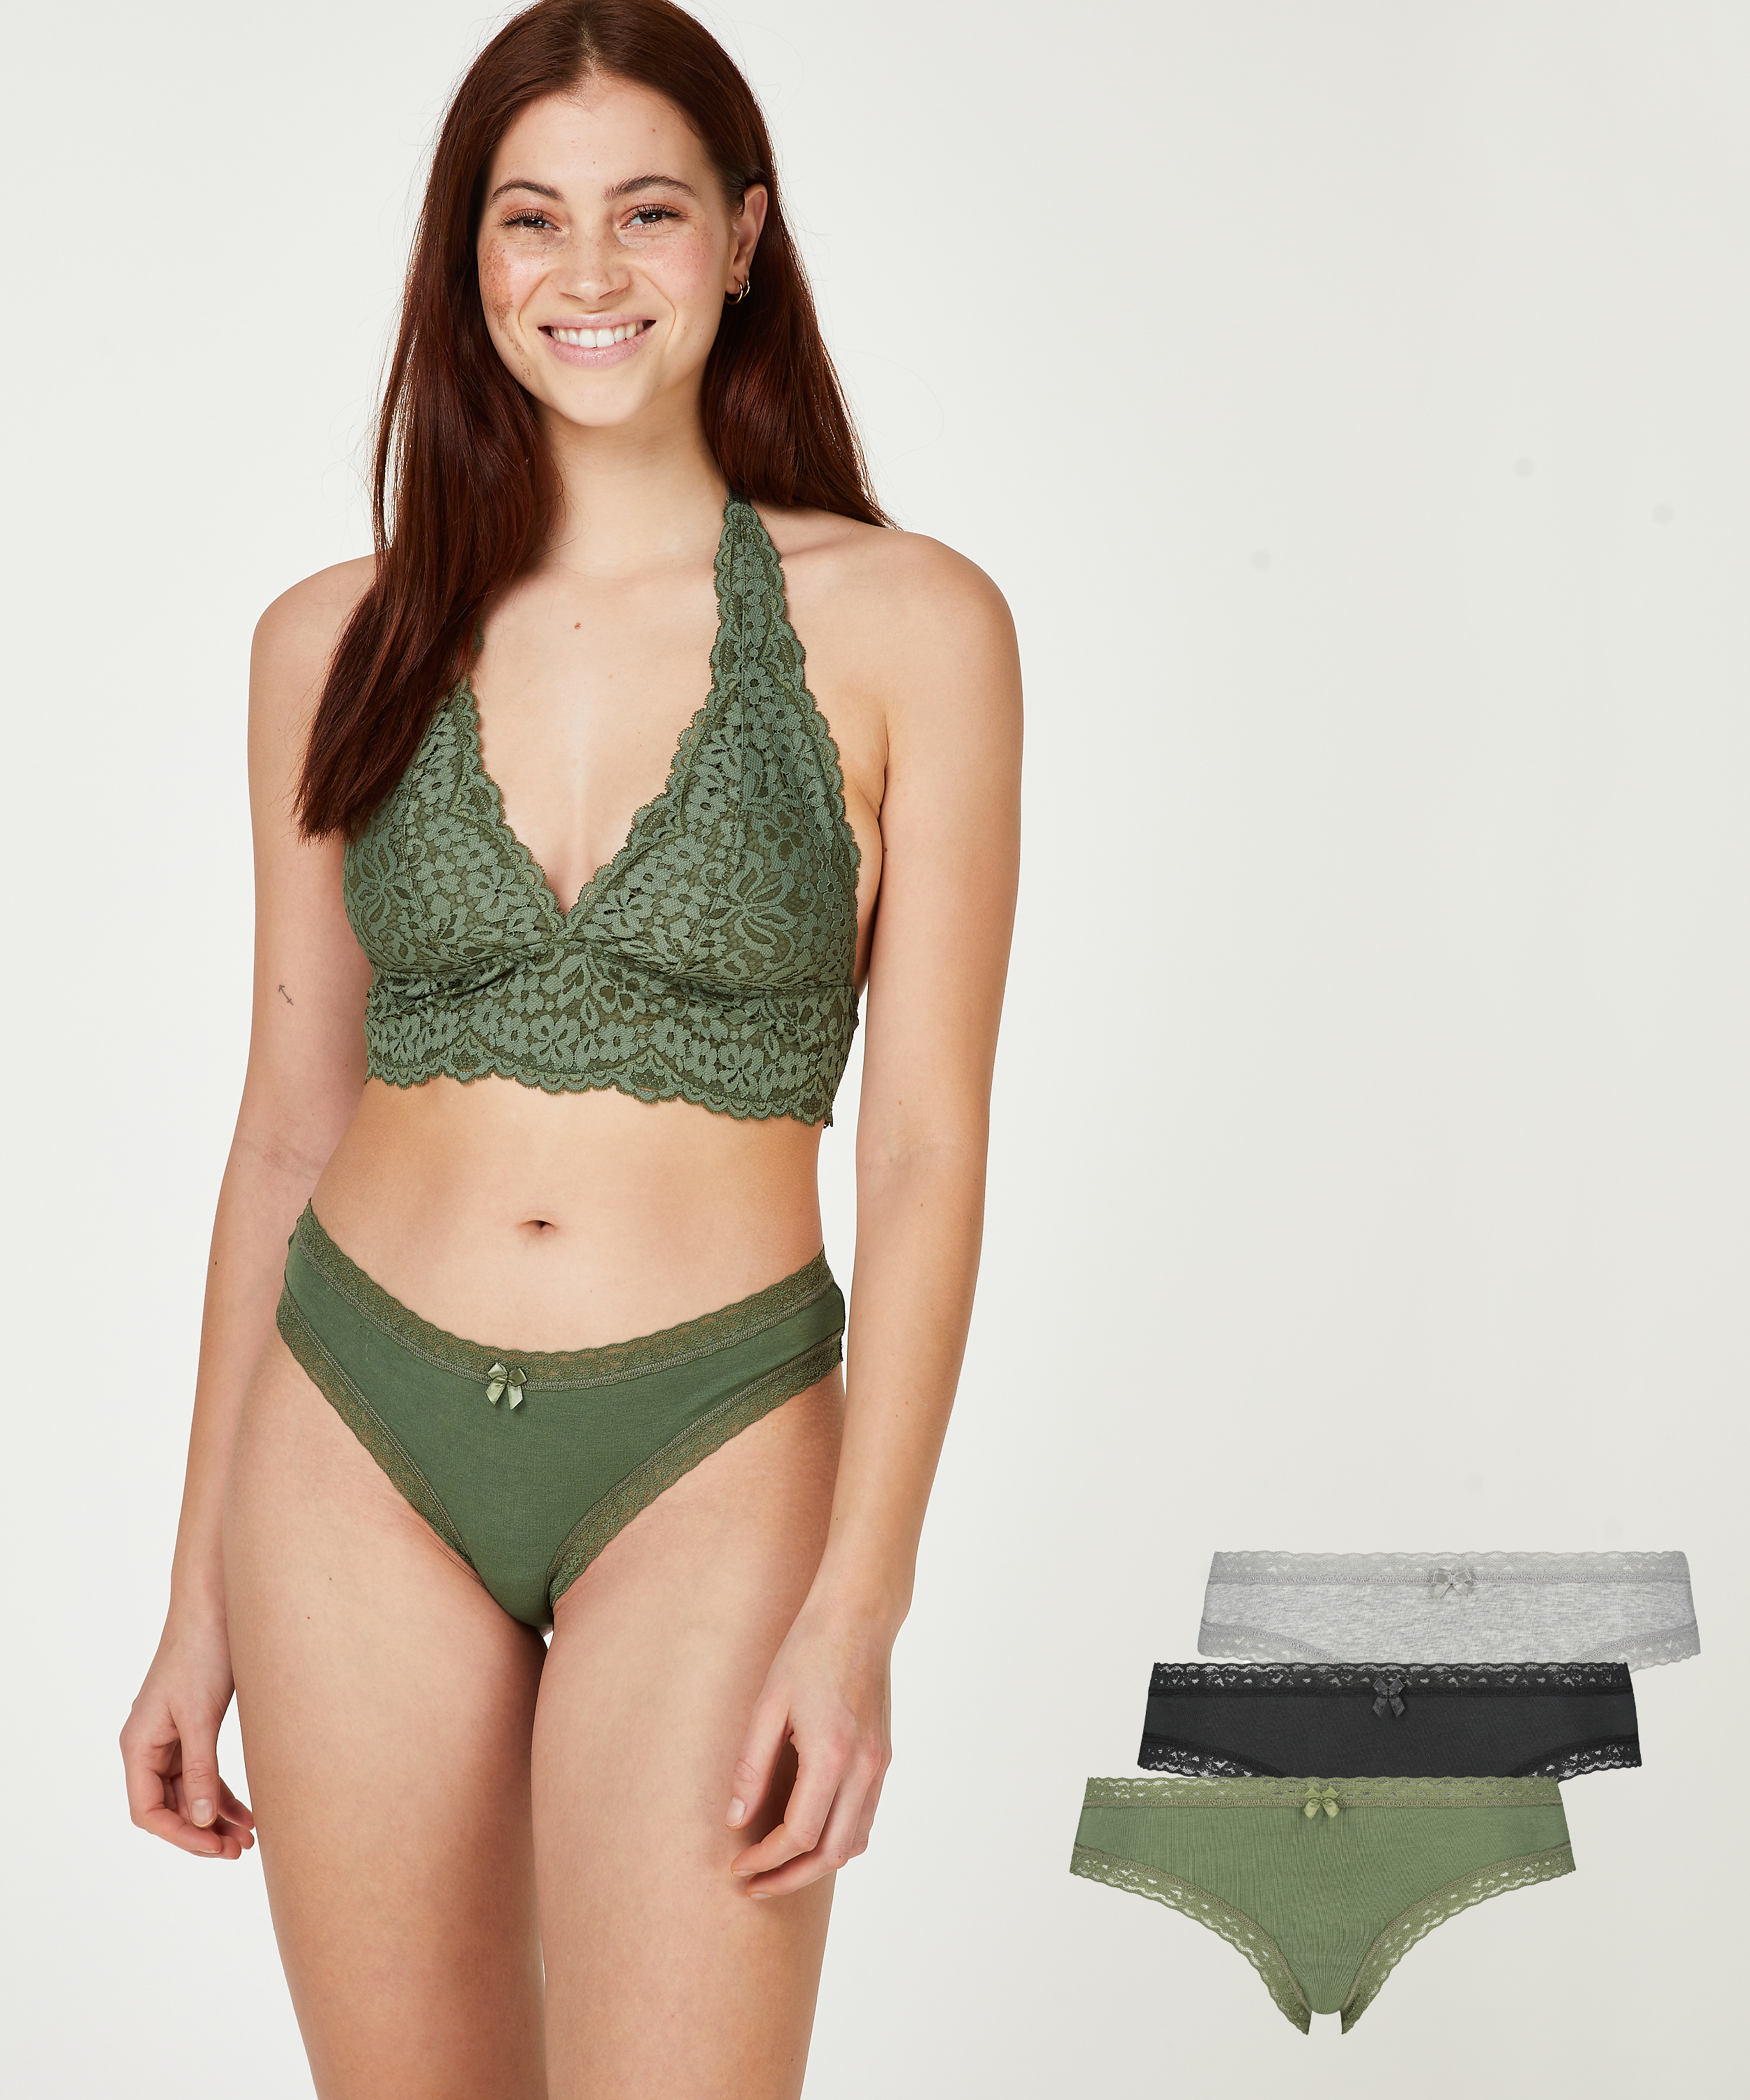 Free Spirit 3-pack of knickers, Green, main